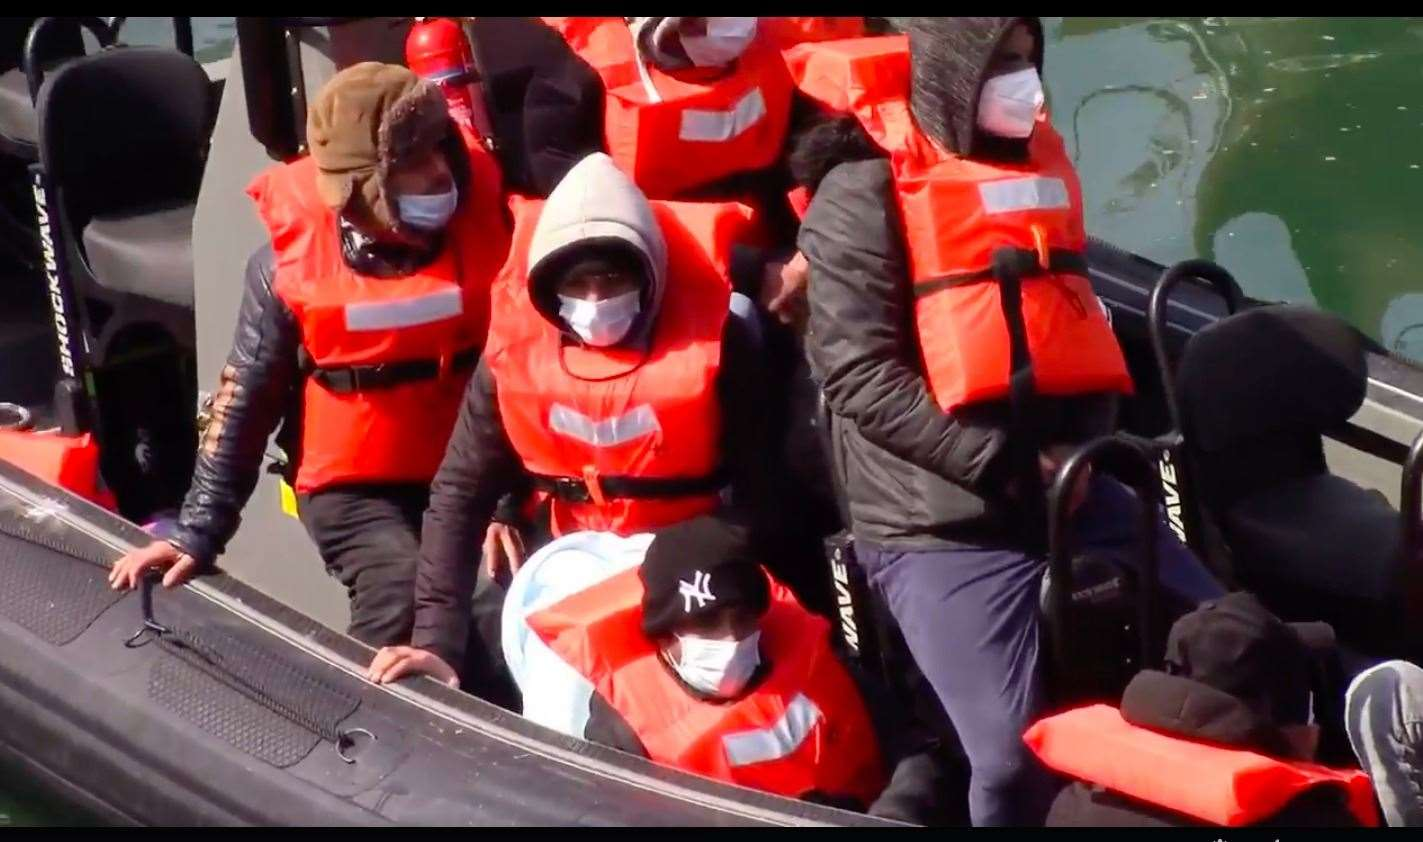 Asylum seekers continue to cross the Channel to seek asylum. Picture: Chris Johnson